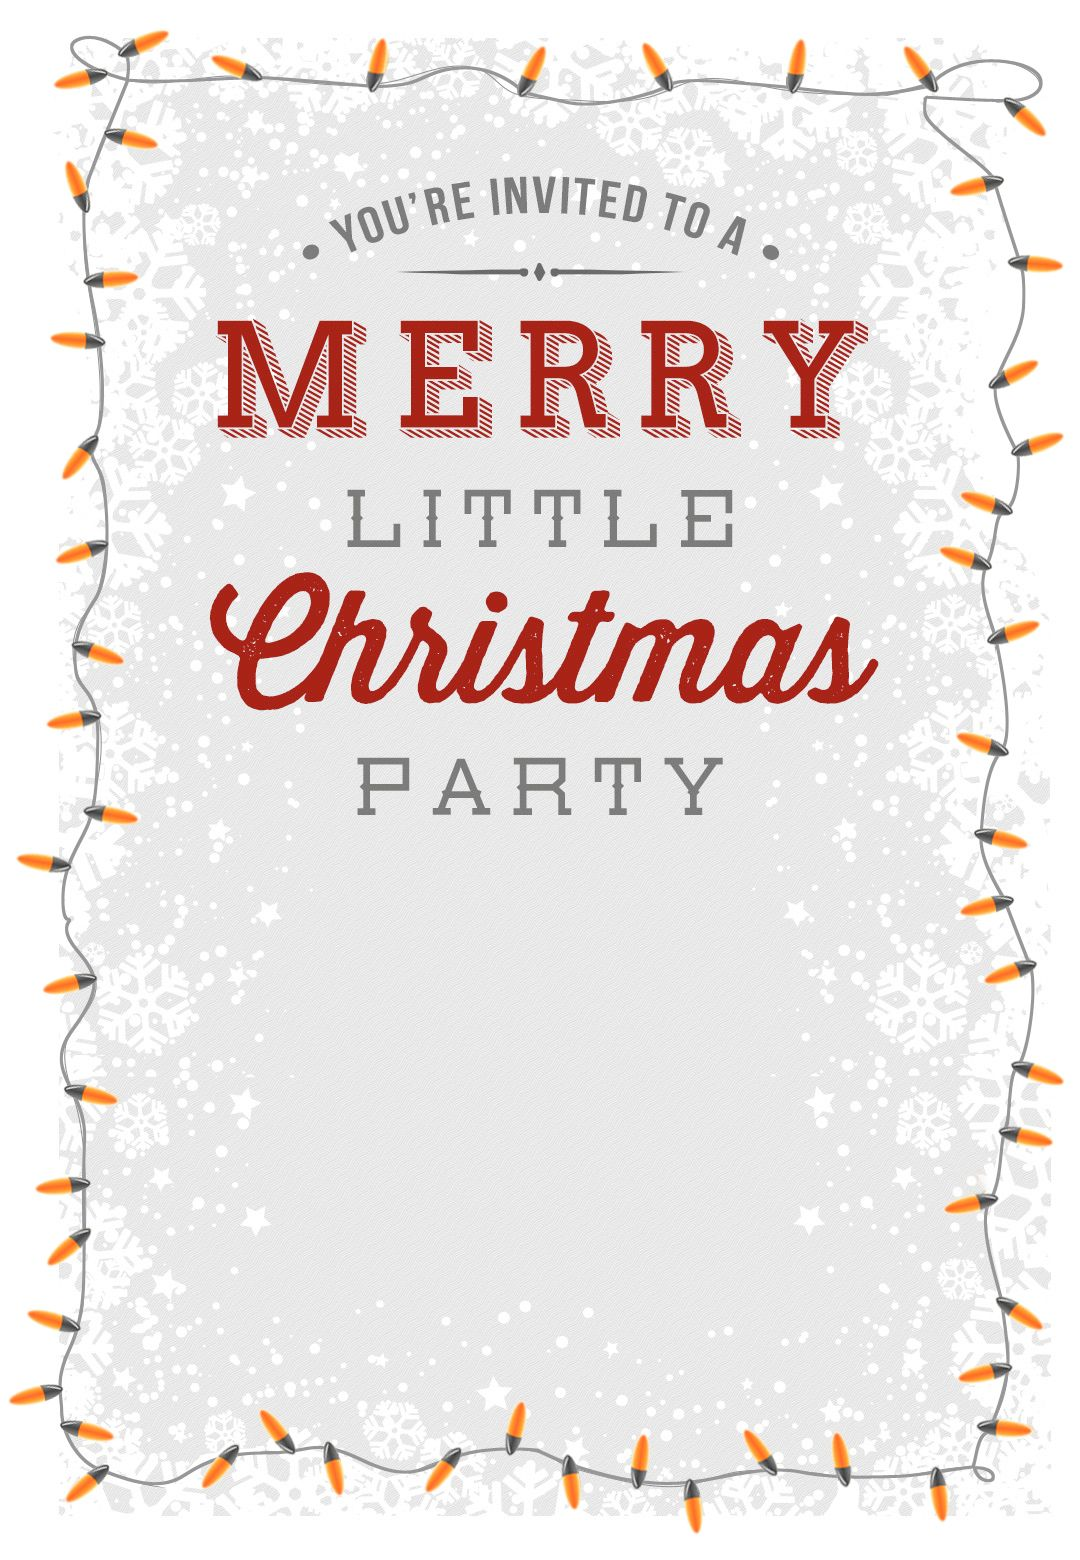 A Merry Little Party - Free Printable Christmas Invita